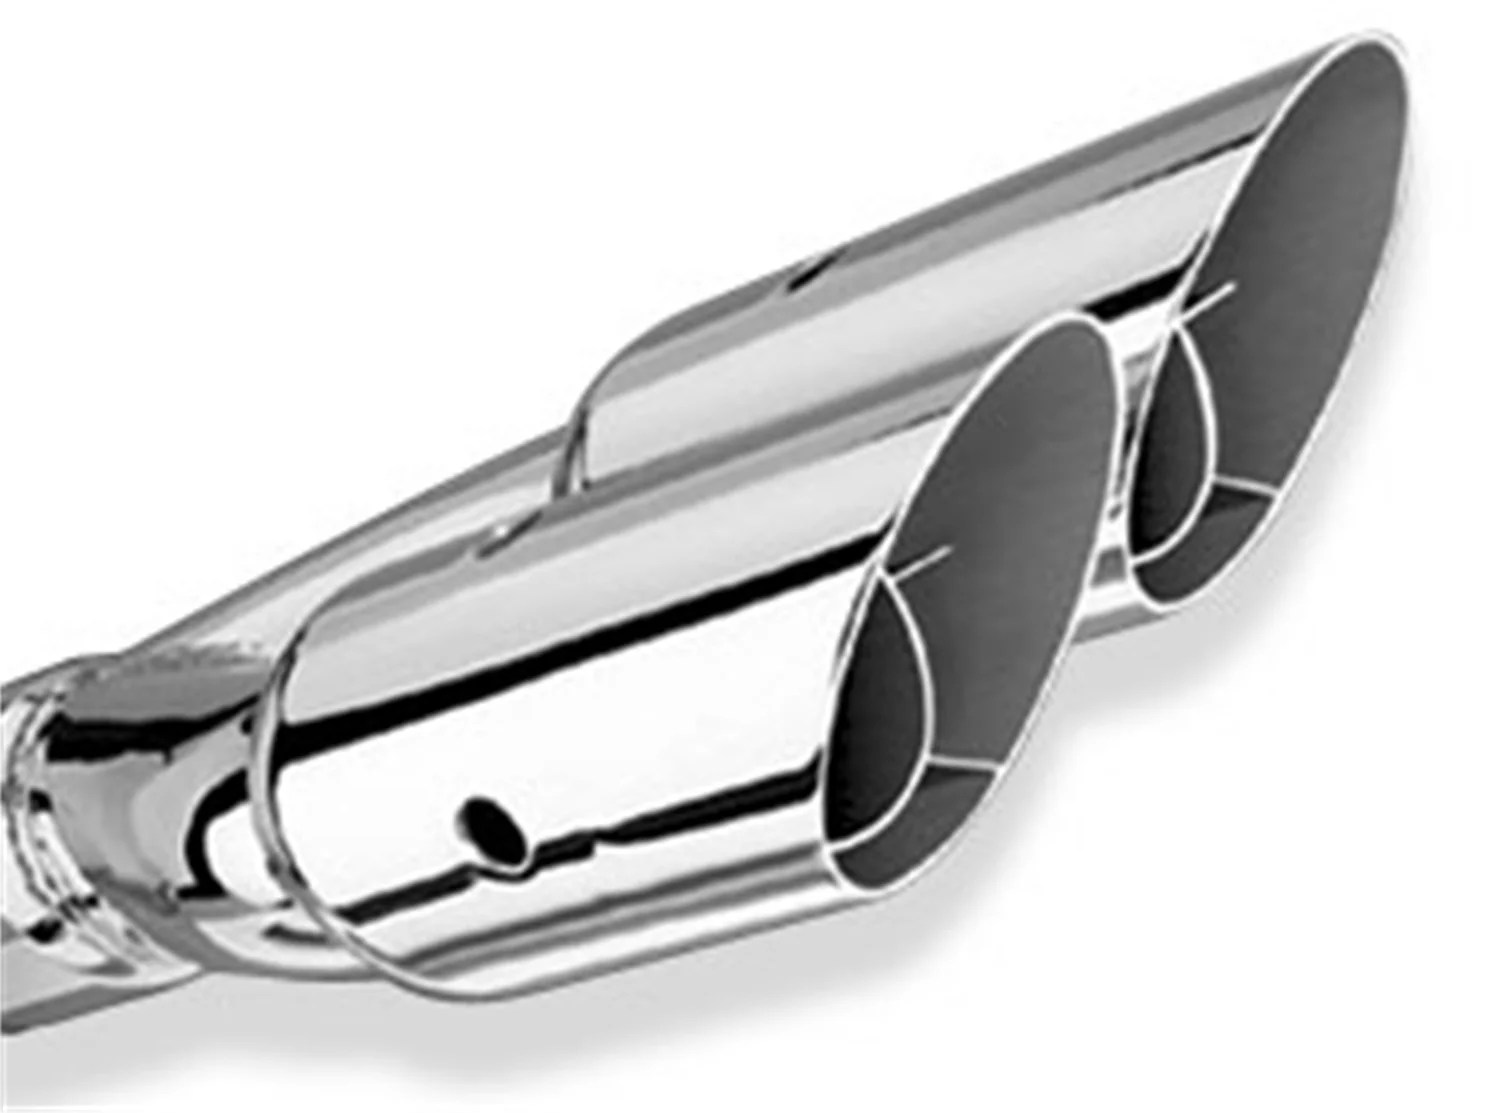 borla 20213 exhaust tip 2 5 in inlet 3 in outlet 14 in length set screw included dual round angle cut intercooled w y pipe polished stainless